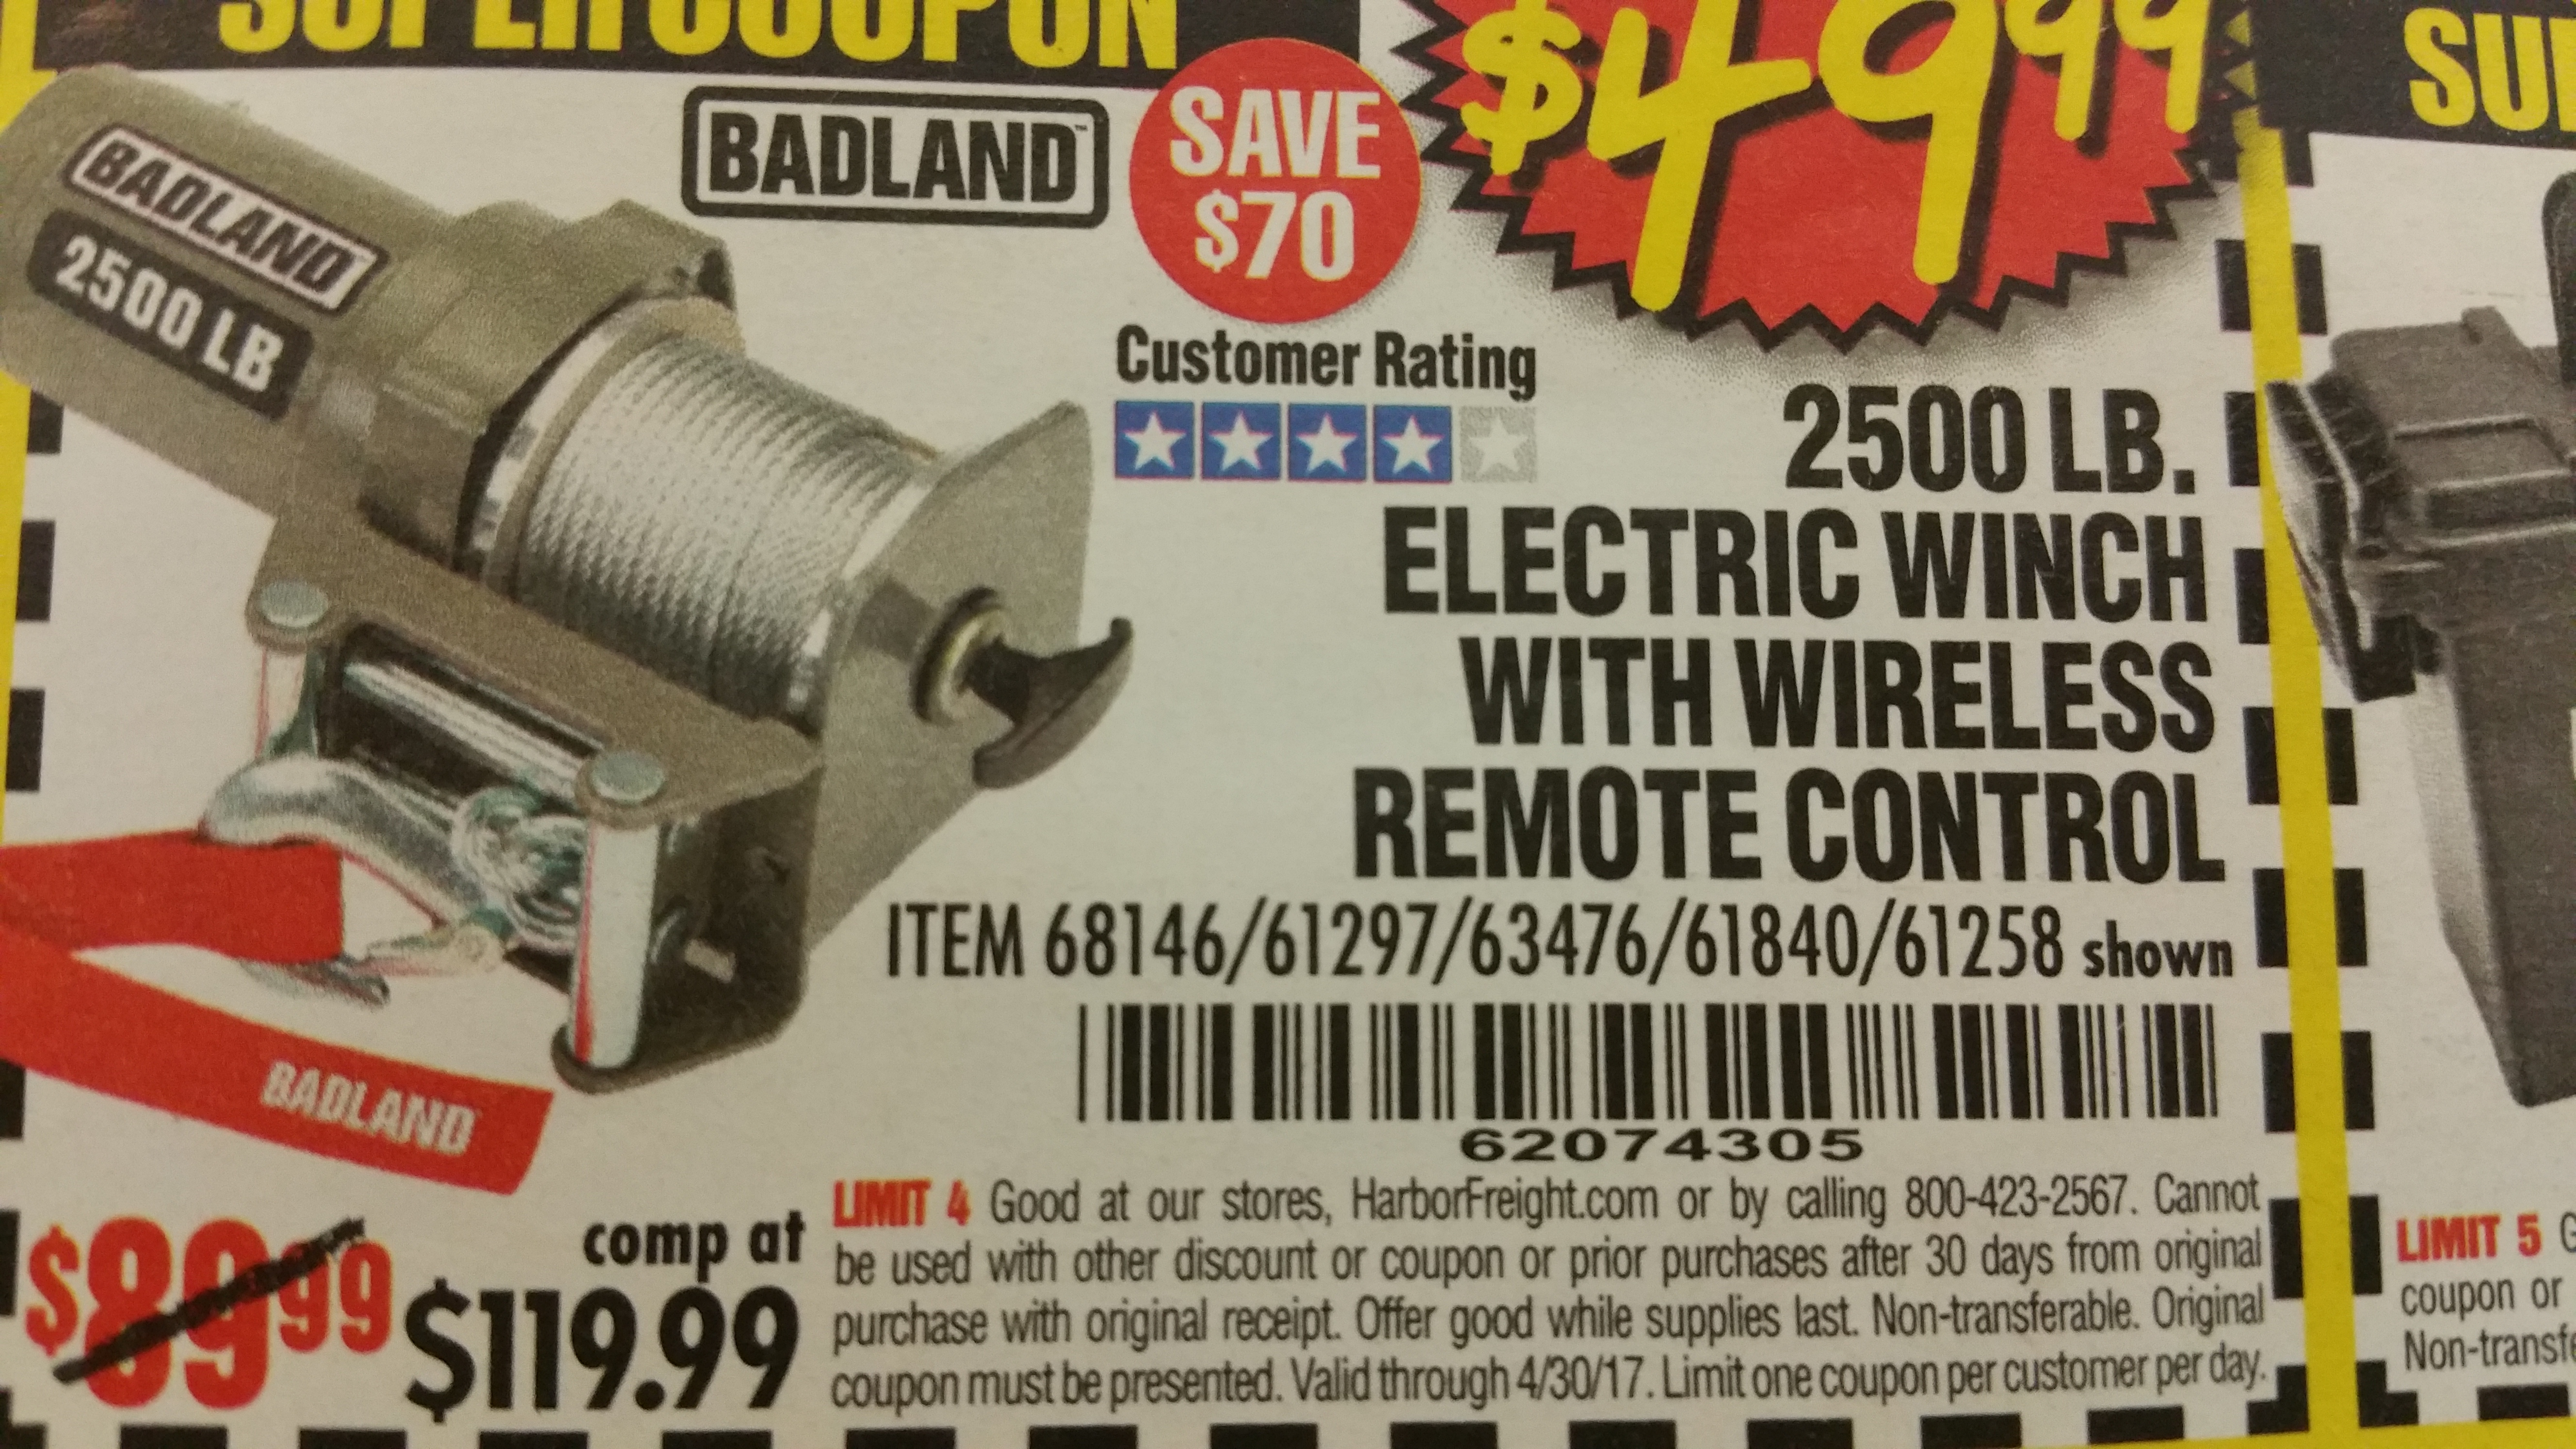 Harbor freight 2500 winch coupon / Berlin city nissan coupons